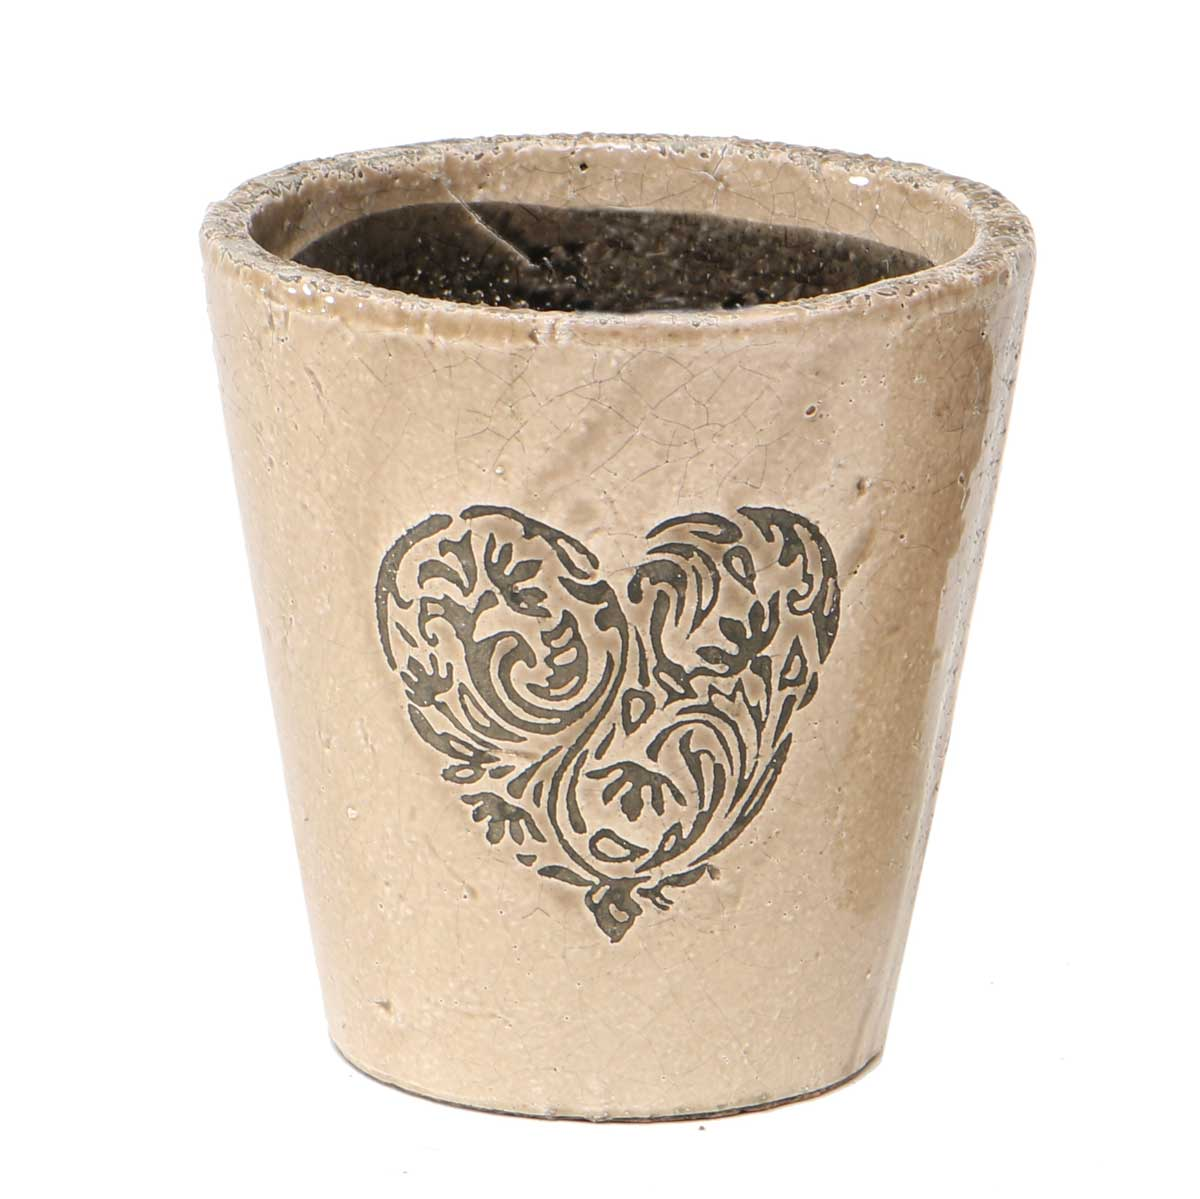 "Heart Scroll Pot Tan 4.5""x4.5"" A2067 TN v22"